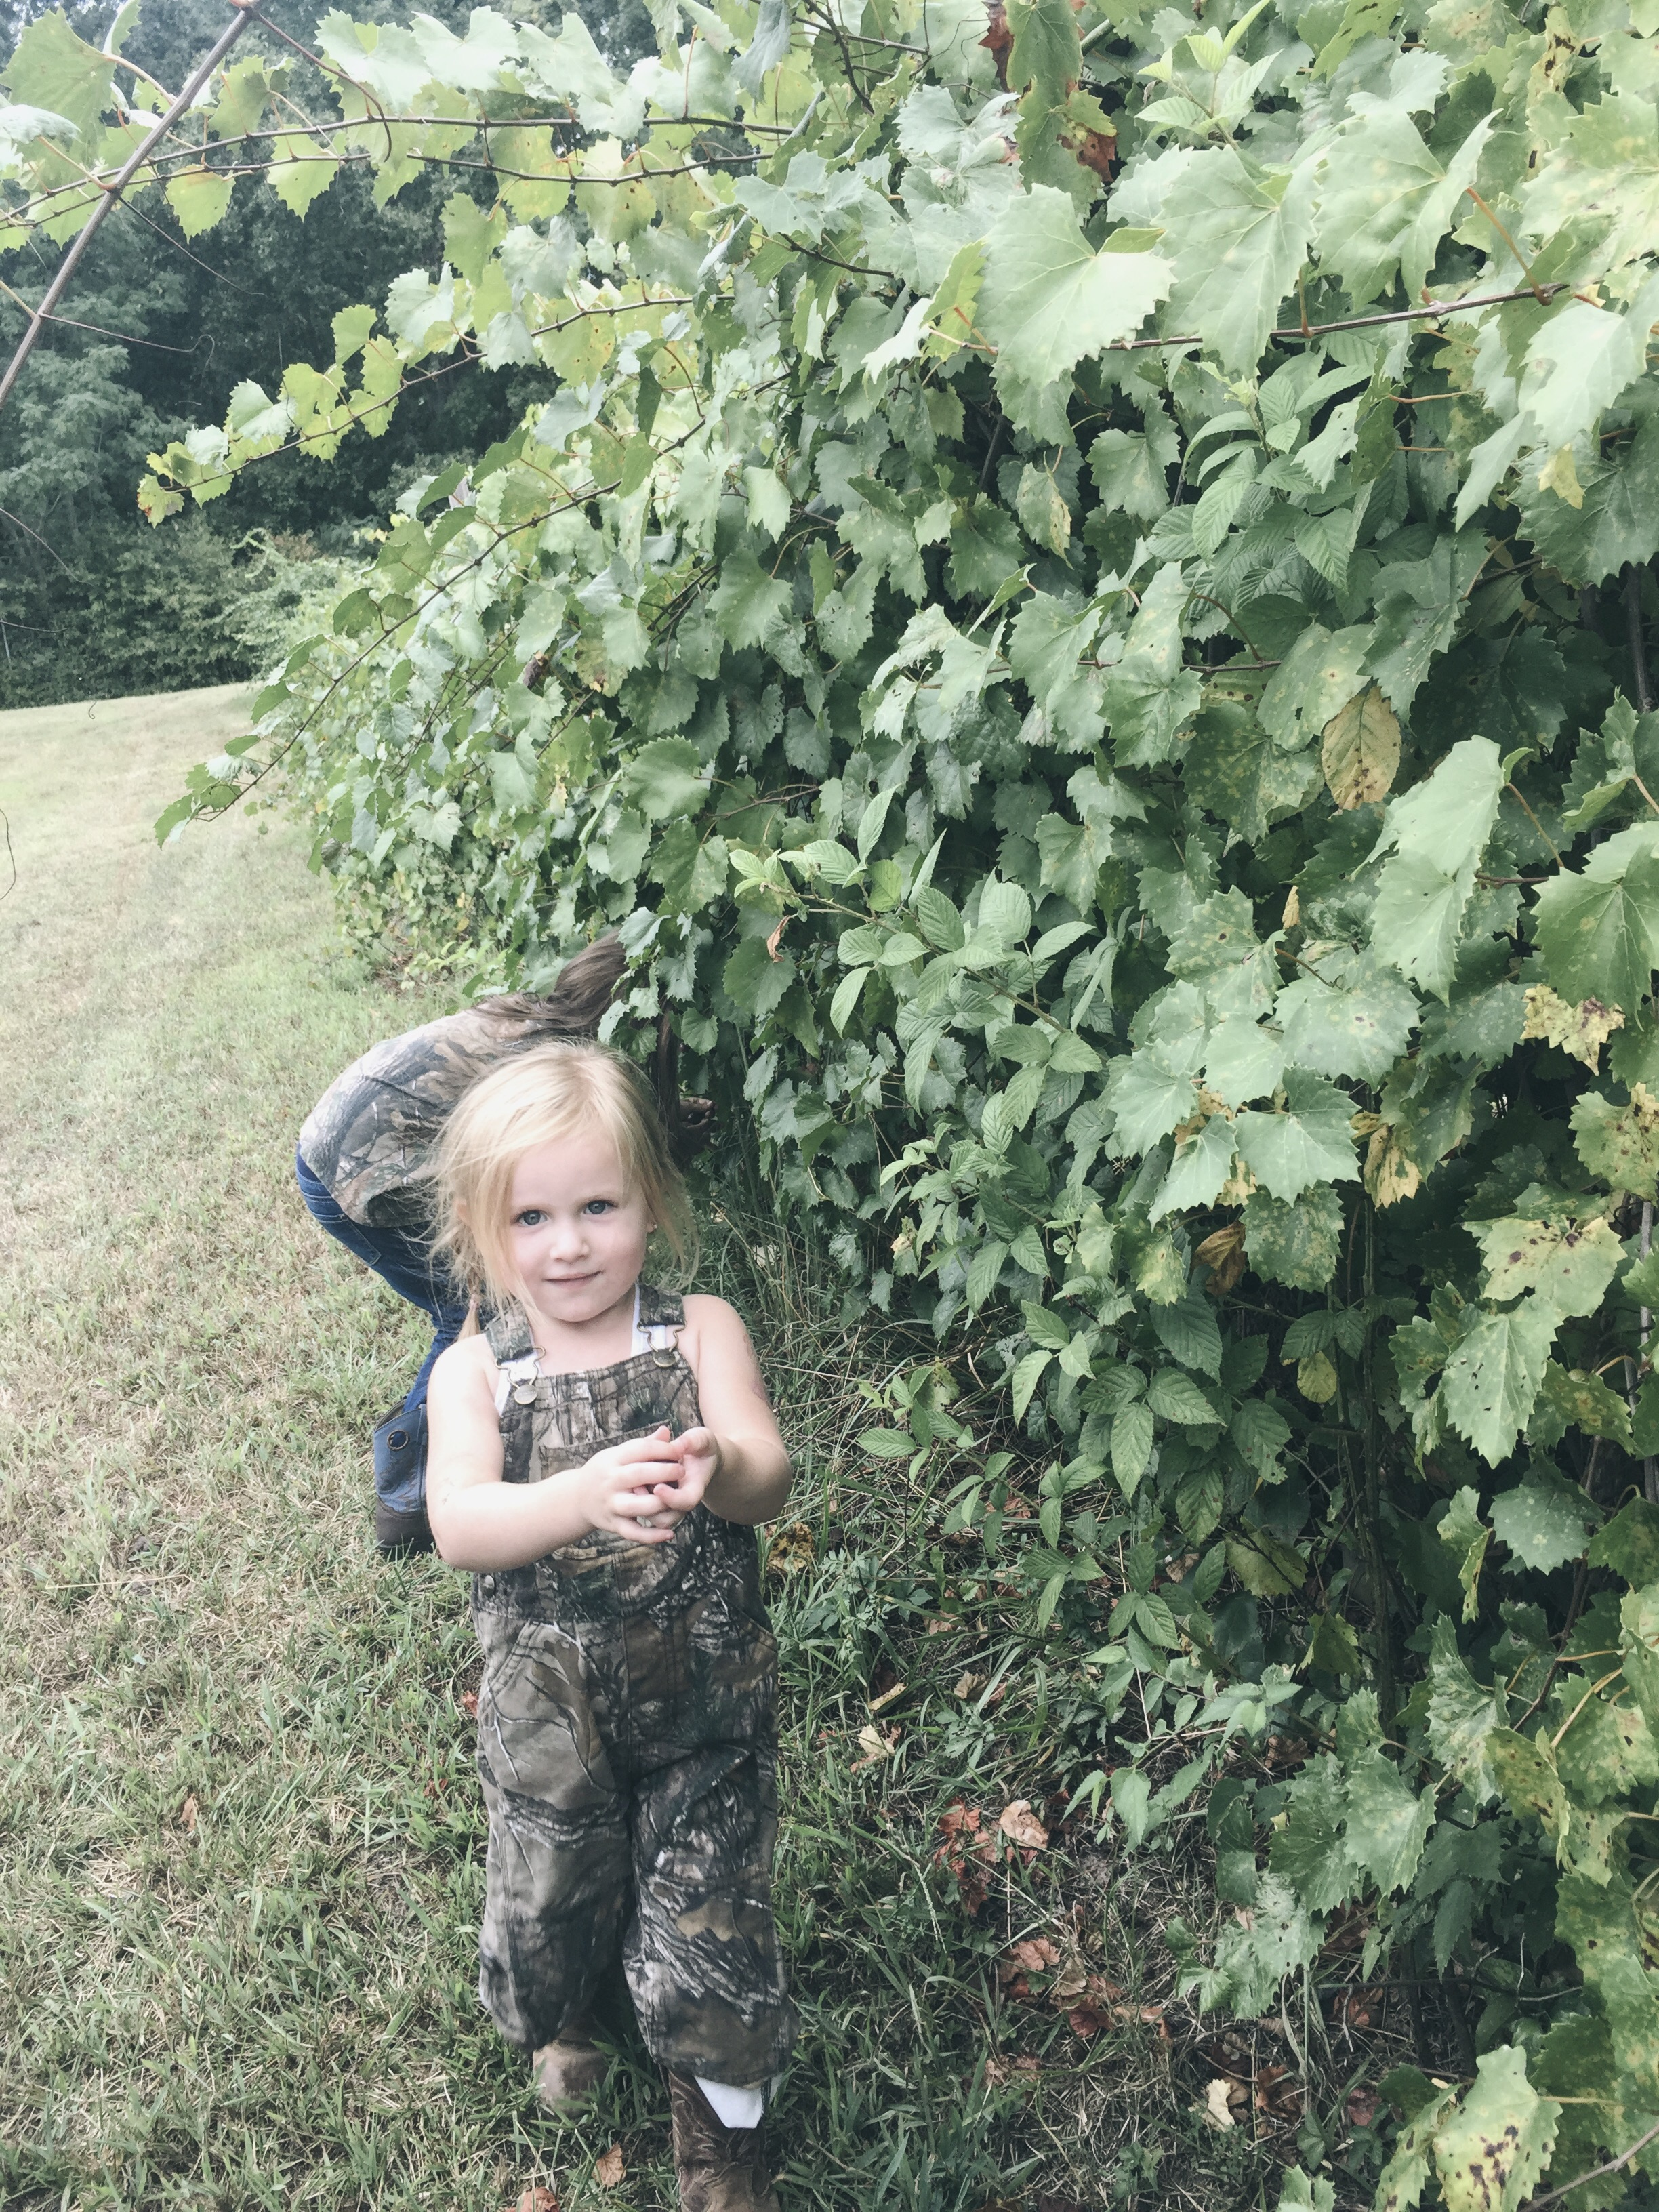 picking muscadines off the vine